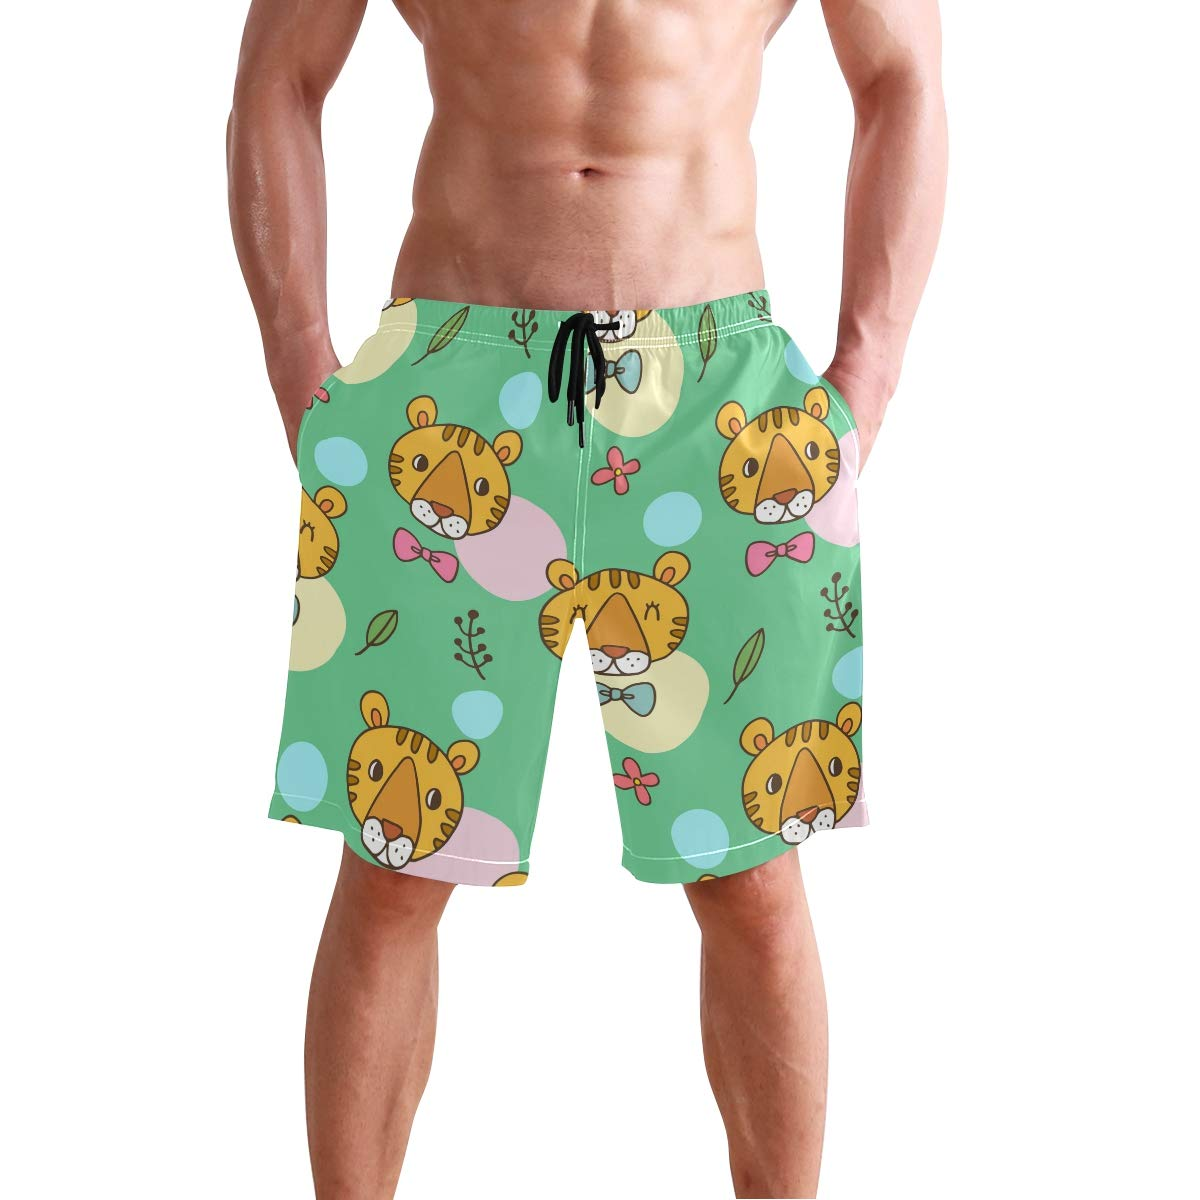 JERECY Mens Swim Trunks Cute Cartoon Tiger Face Bow Pattern Quick Dry Board Shorts with Drawstring and Pockets